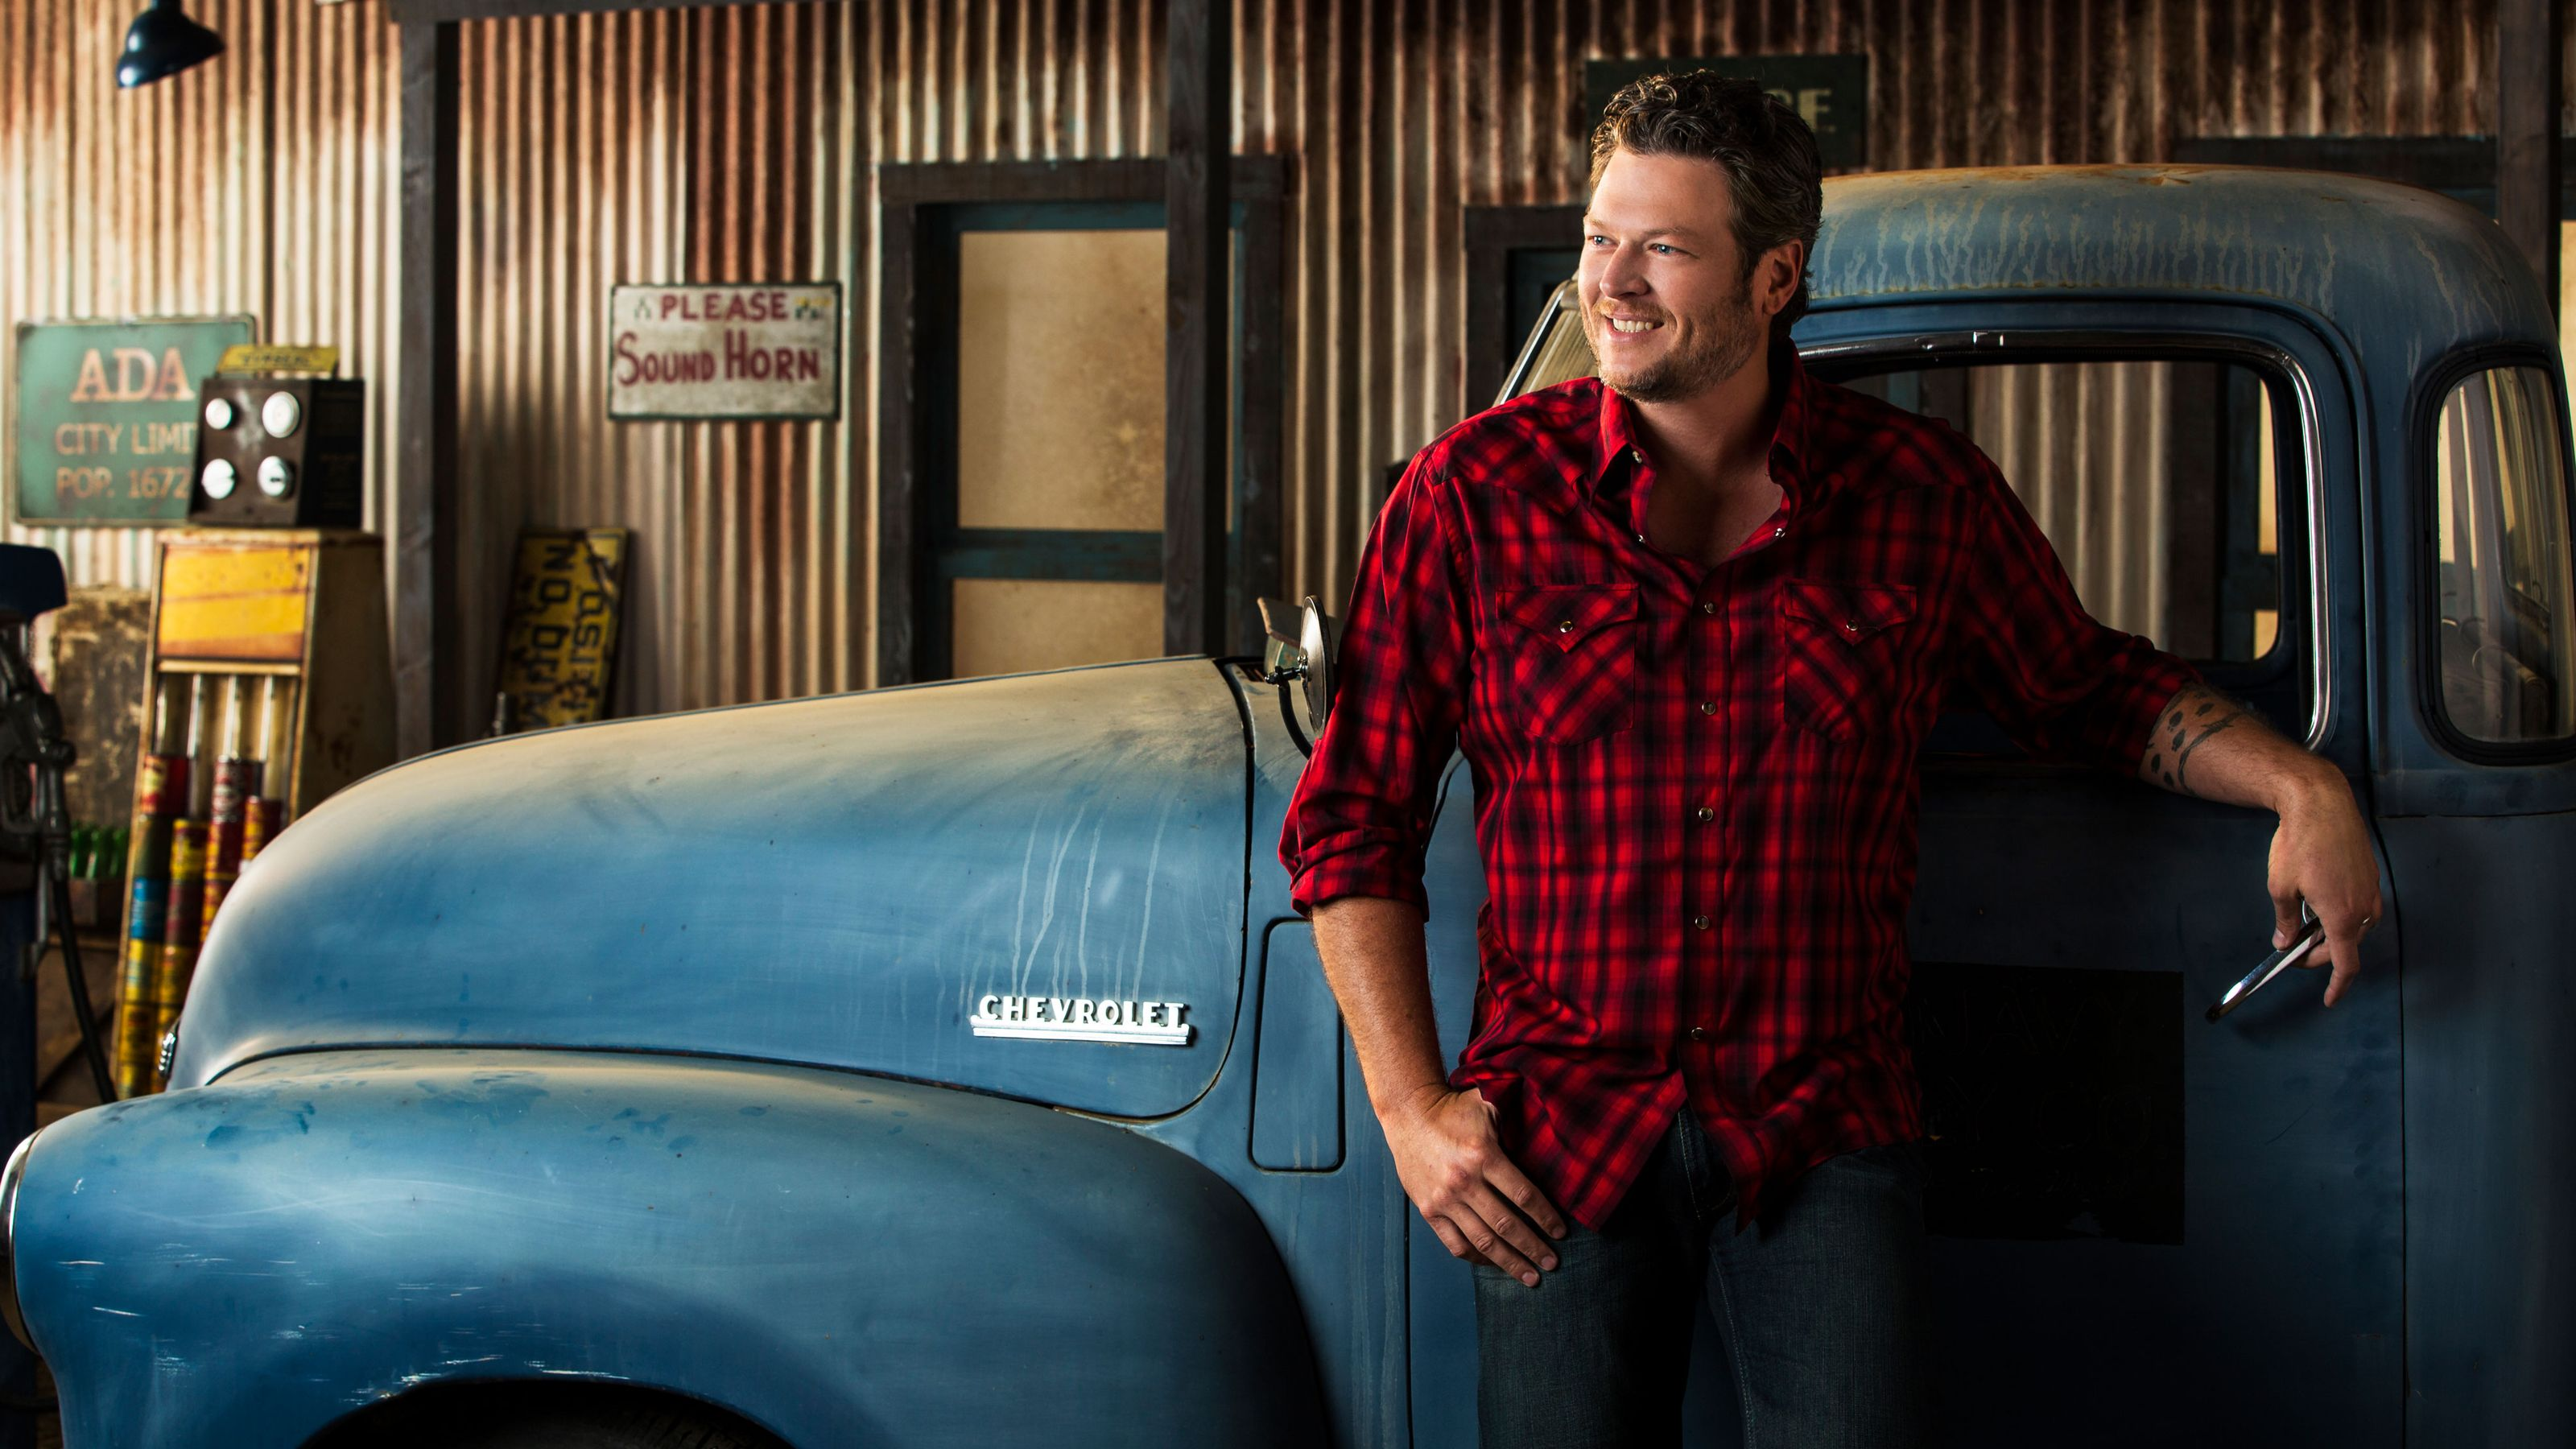 Fall Wallpaper 1080x1920 Blake Shelton 2 Full Hd Wallpaper And Background Image